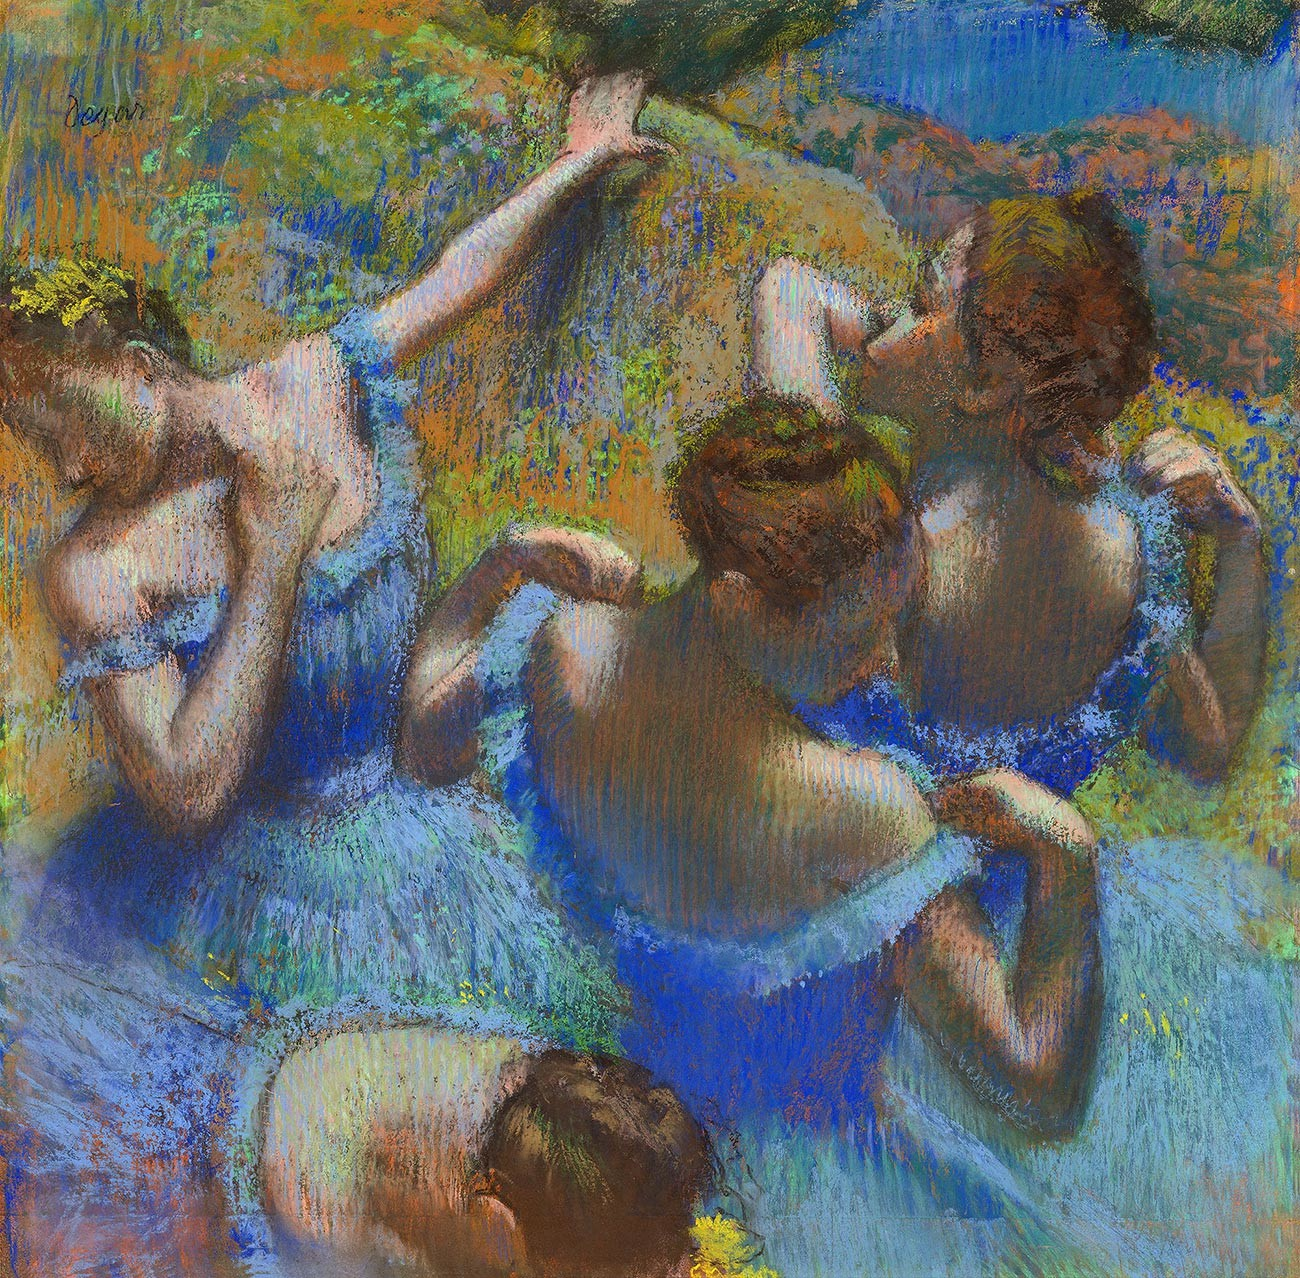 Edgar Degas. Blue Dancers, 1897